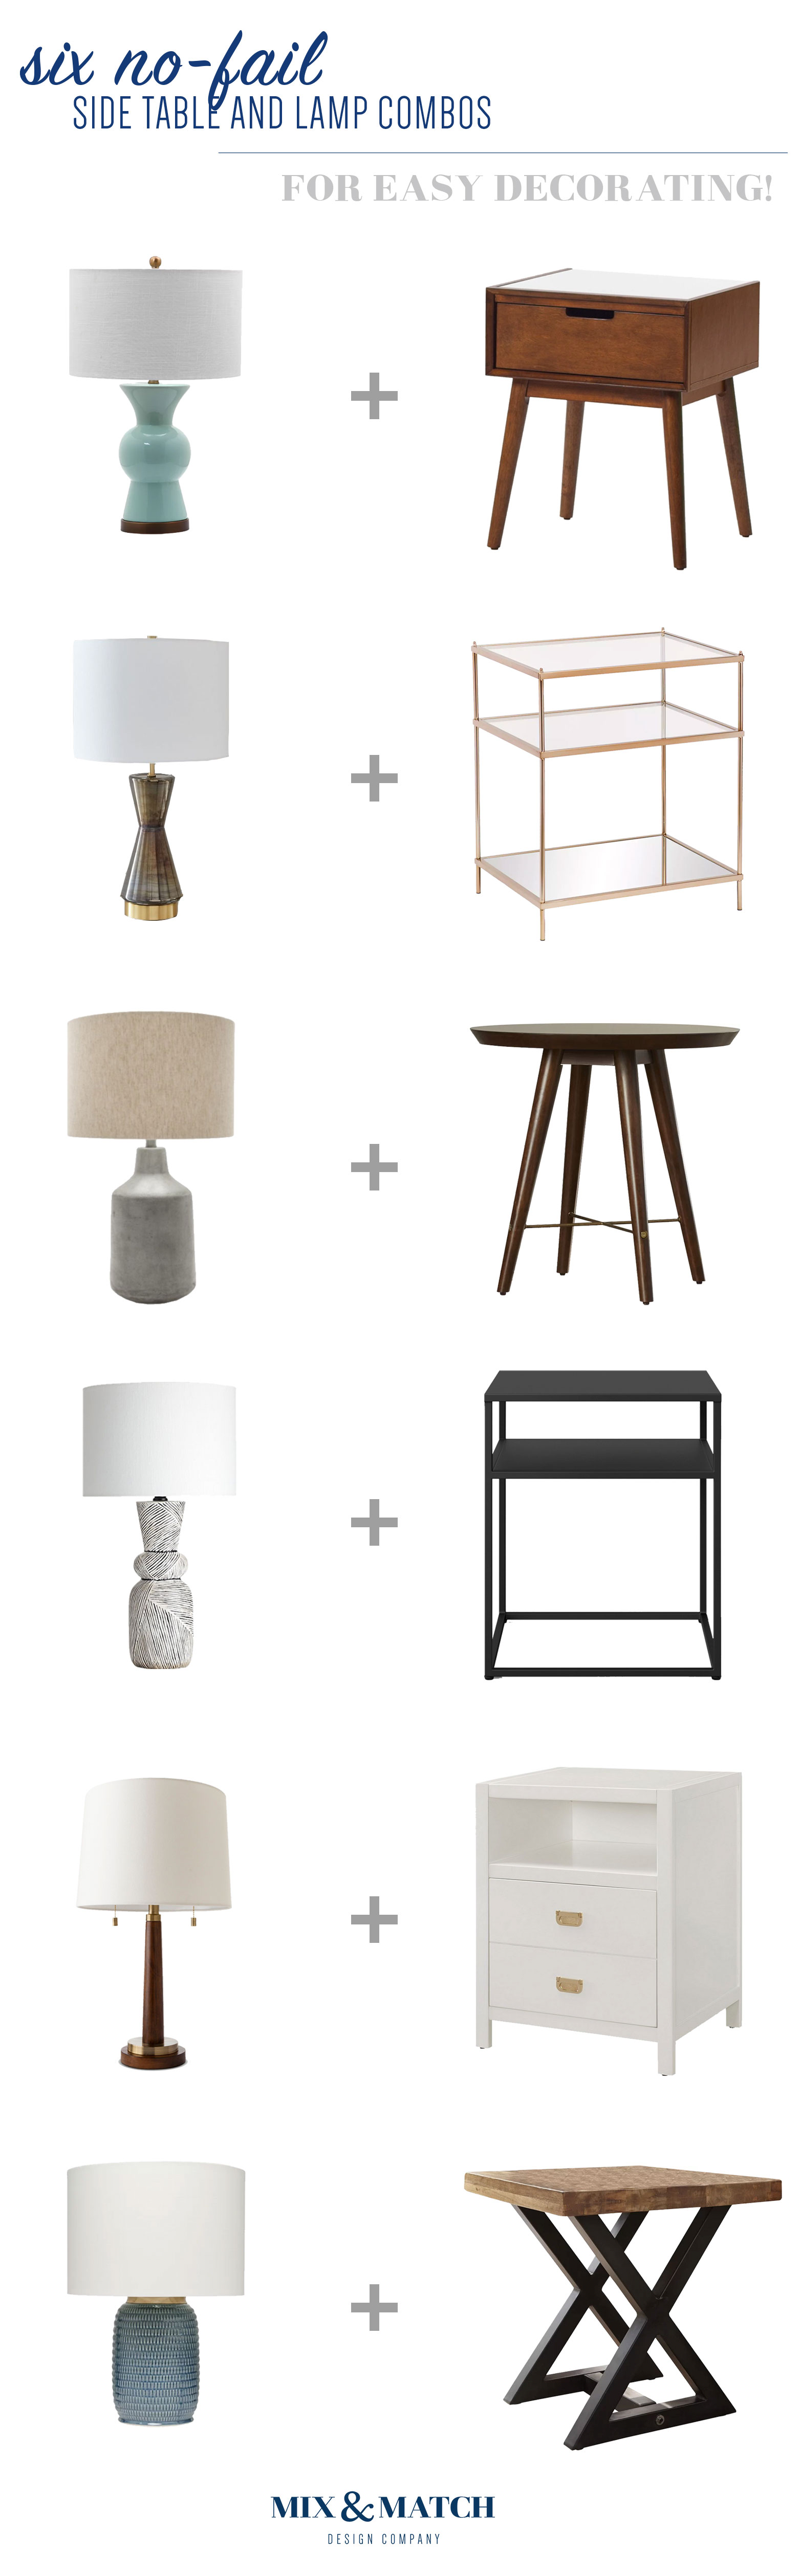 How do you go about choosing the right side table and lamp combination? Head o over to this blog post! I'll teach you how, plus you can find the sources for these six no-fail combos.